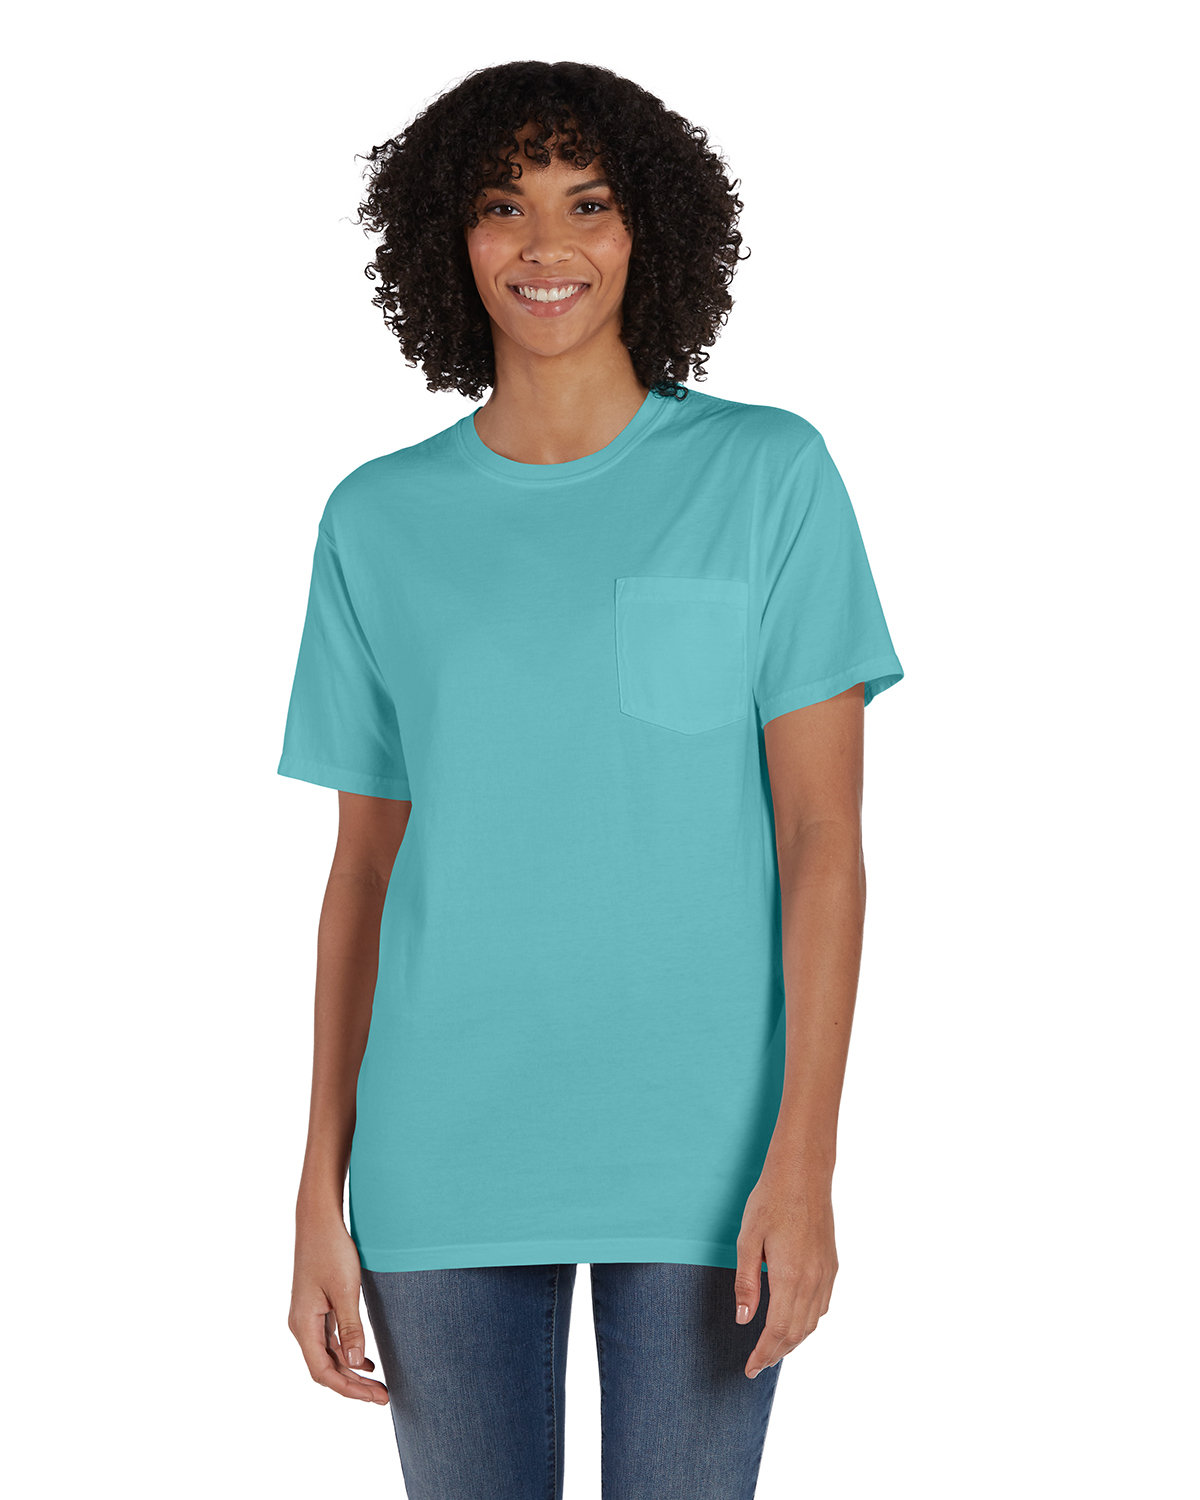 ComfortWash by Hanes Unisex Garment-Dyed T-Shirt with Pocket MINT